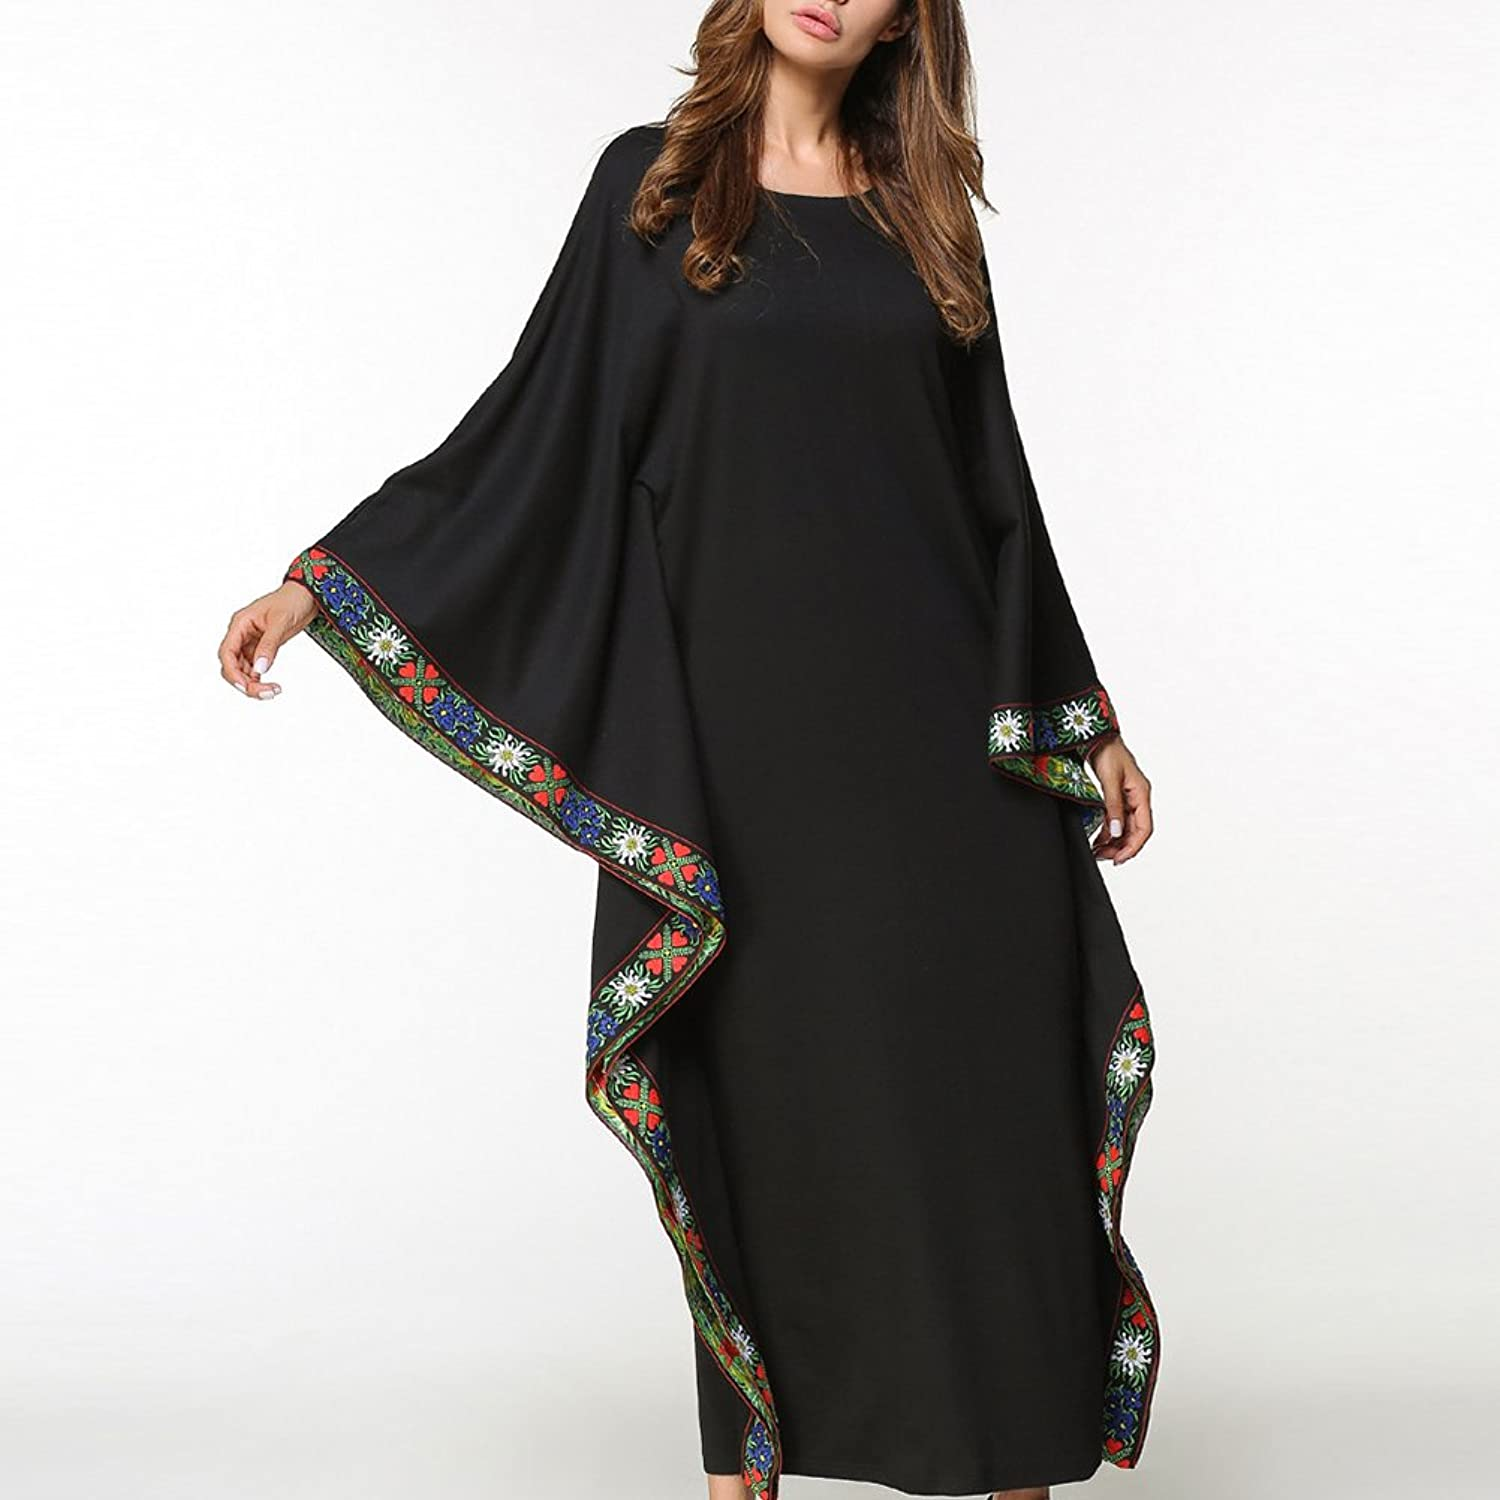 Zhhlinyuan Muslims Women Flowy Gown Maxi Long Dress For Kaftan Malaysia Caftan Abaya at Amazon Womens Clothing store: